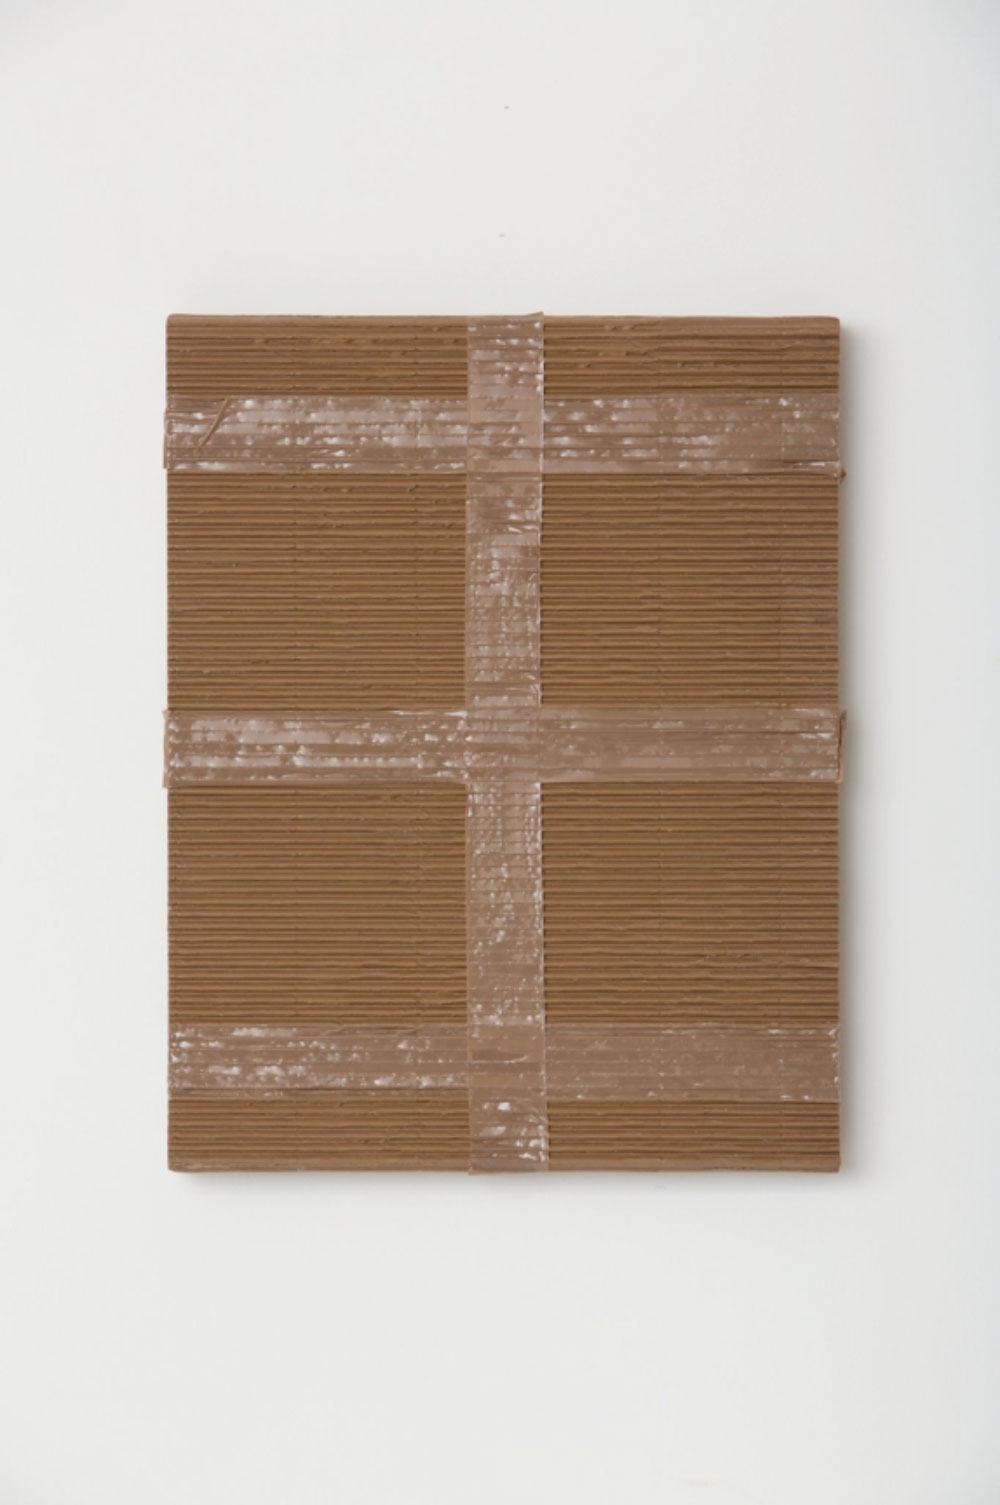 """Monochrome with Corrugated Cardboard and Tan Packing Tape , 2017  Acrylique sur toile de lin  20 x 16 x 1 1/2""""."""